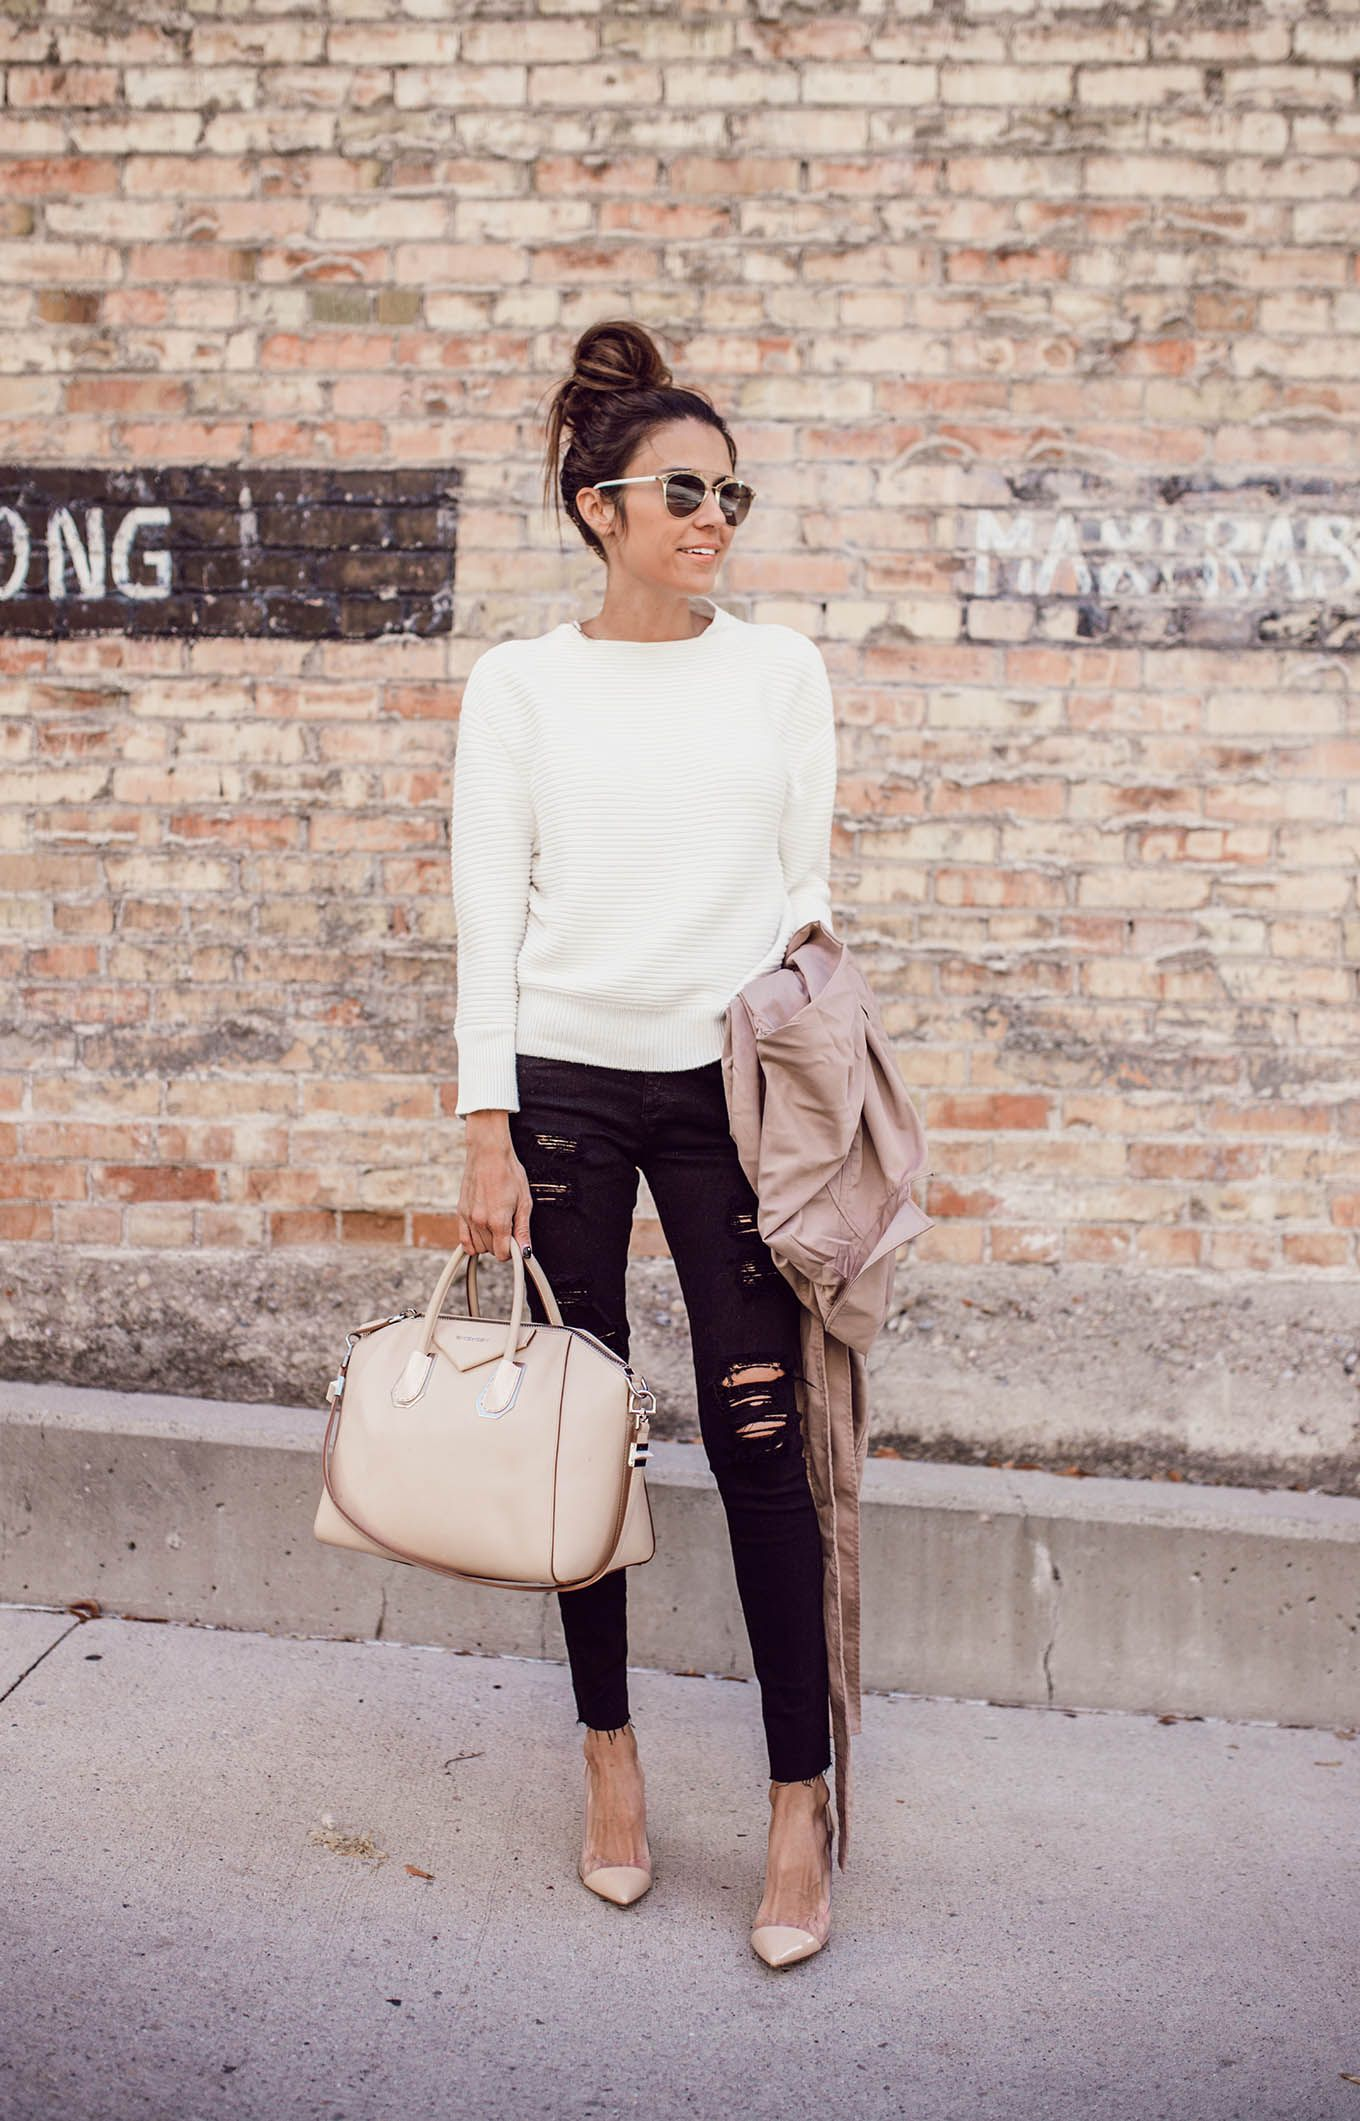 f22108dd54d 50 Incredible Outfits With Black Jeans For The Fashion-Minded Woman ...